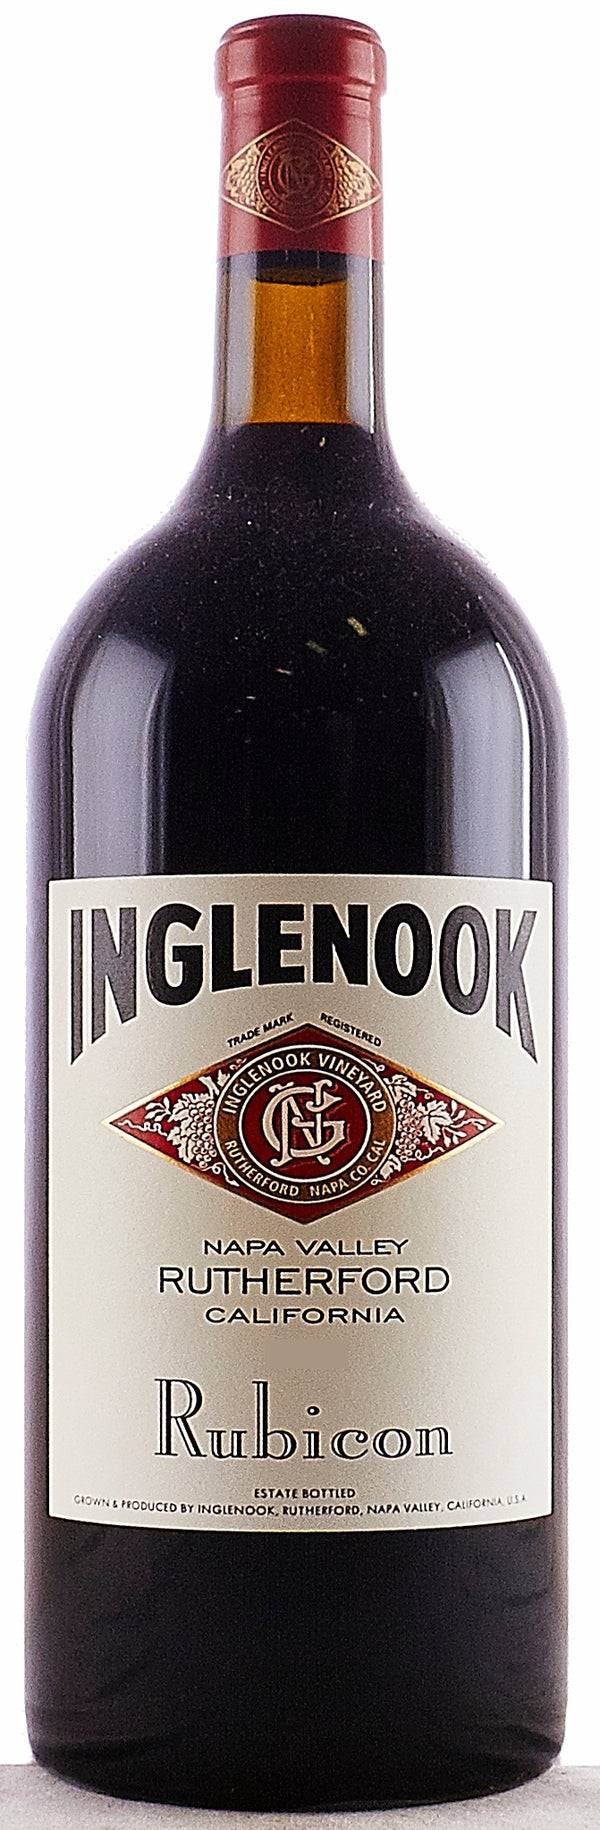 Inglenook Rubicon Red 2012 1.5L